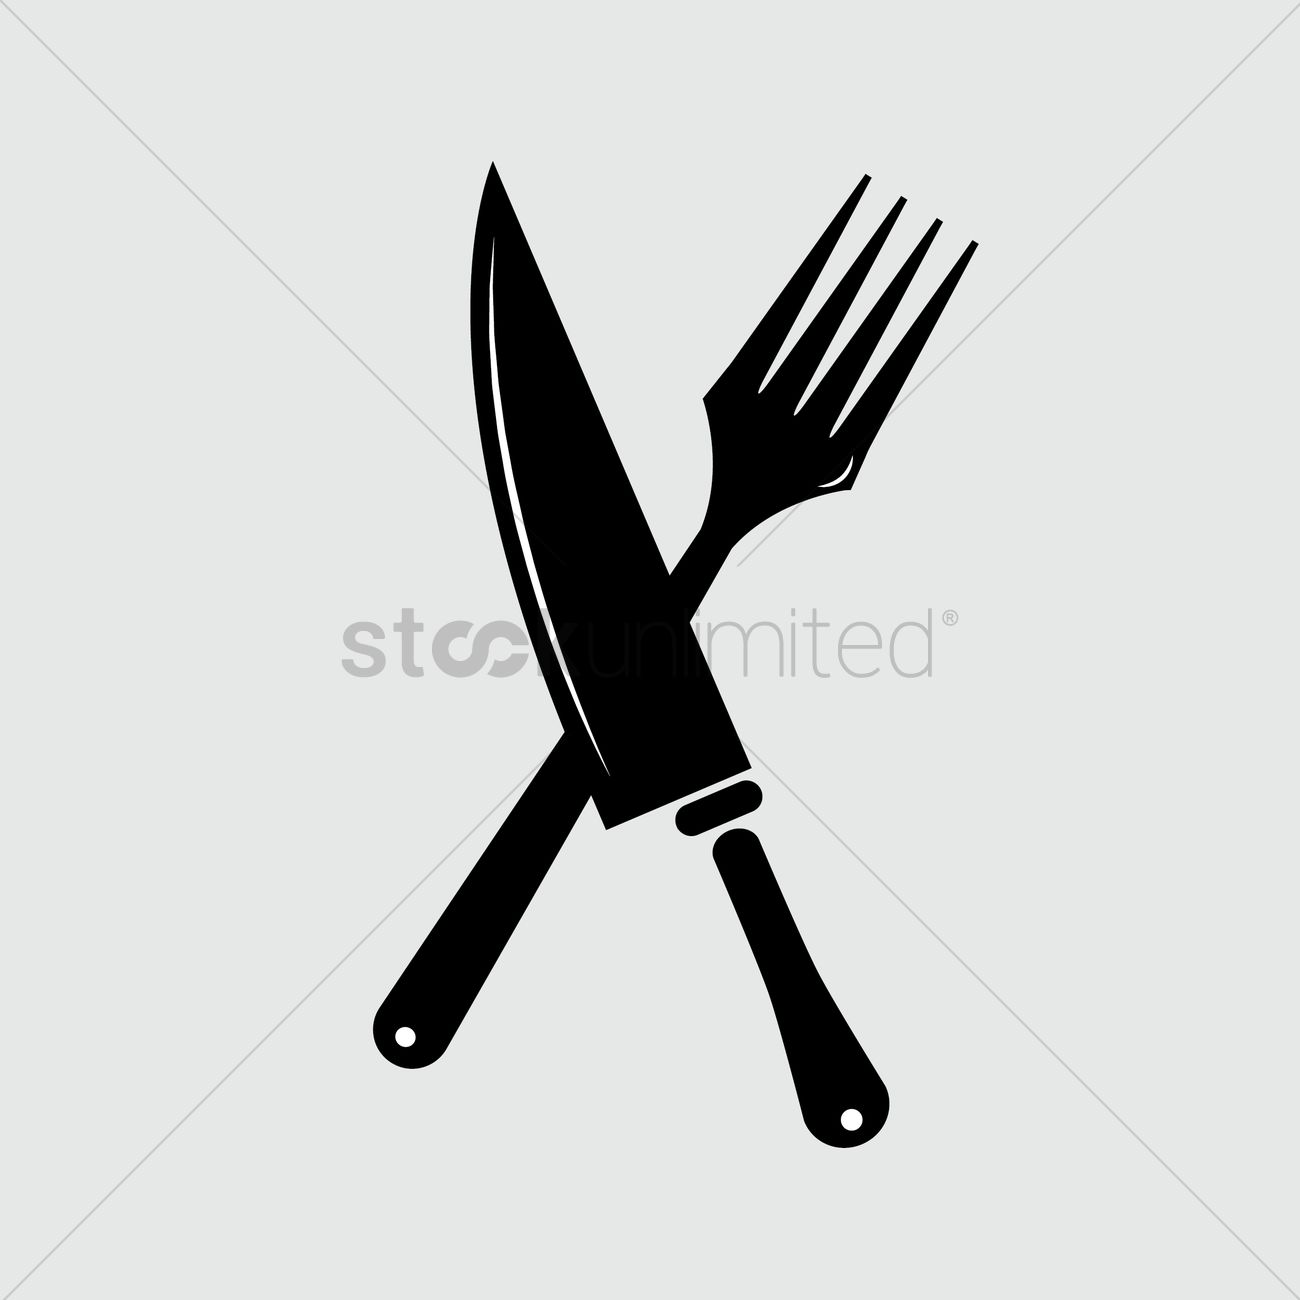 Silhouette Of Knife And Fork Vector Image